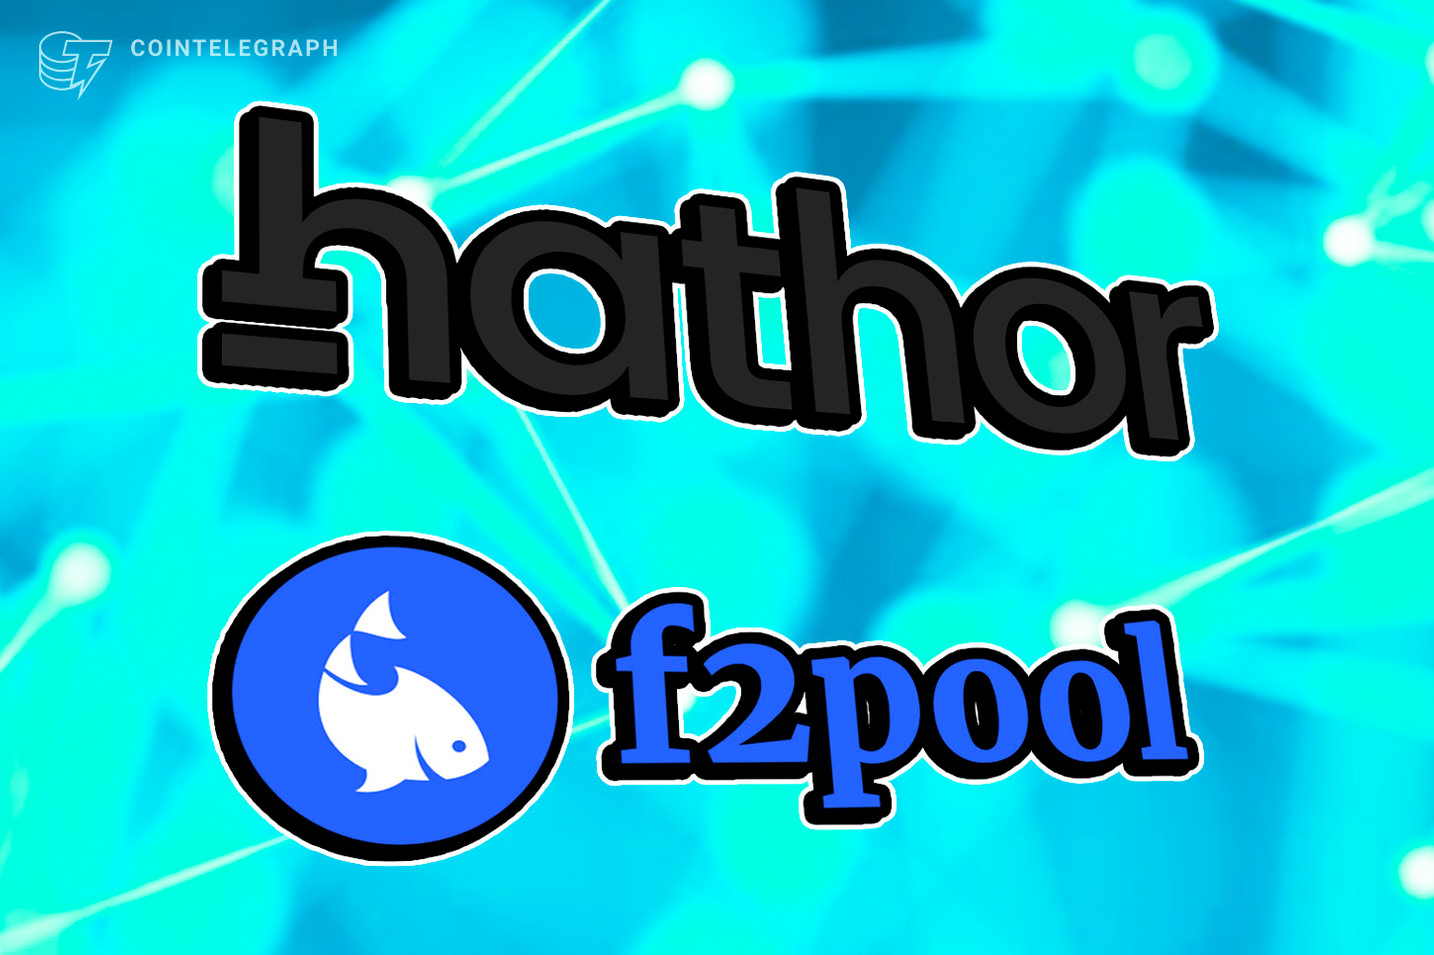 Hathor partners with F2Pool for more hashpower to the merged mining network